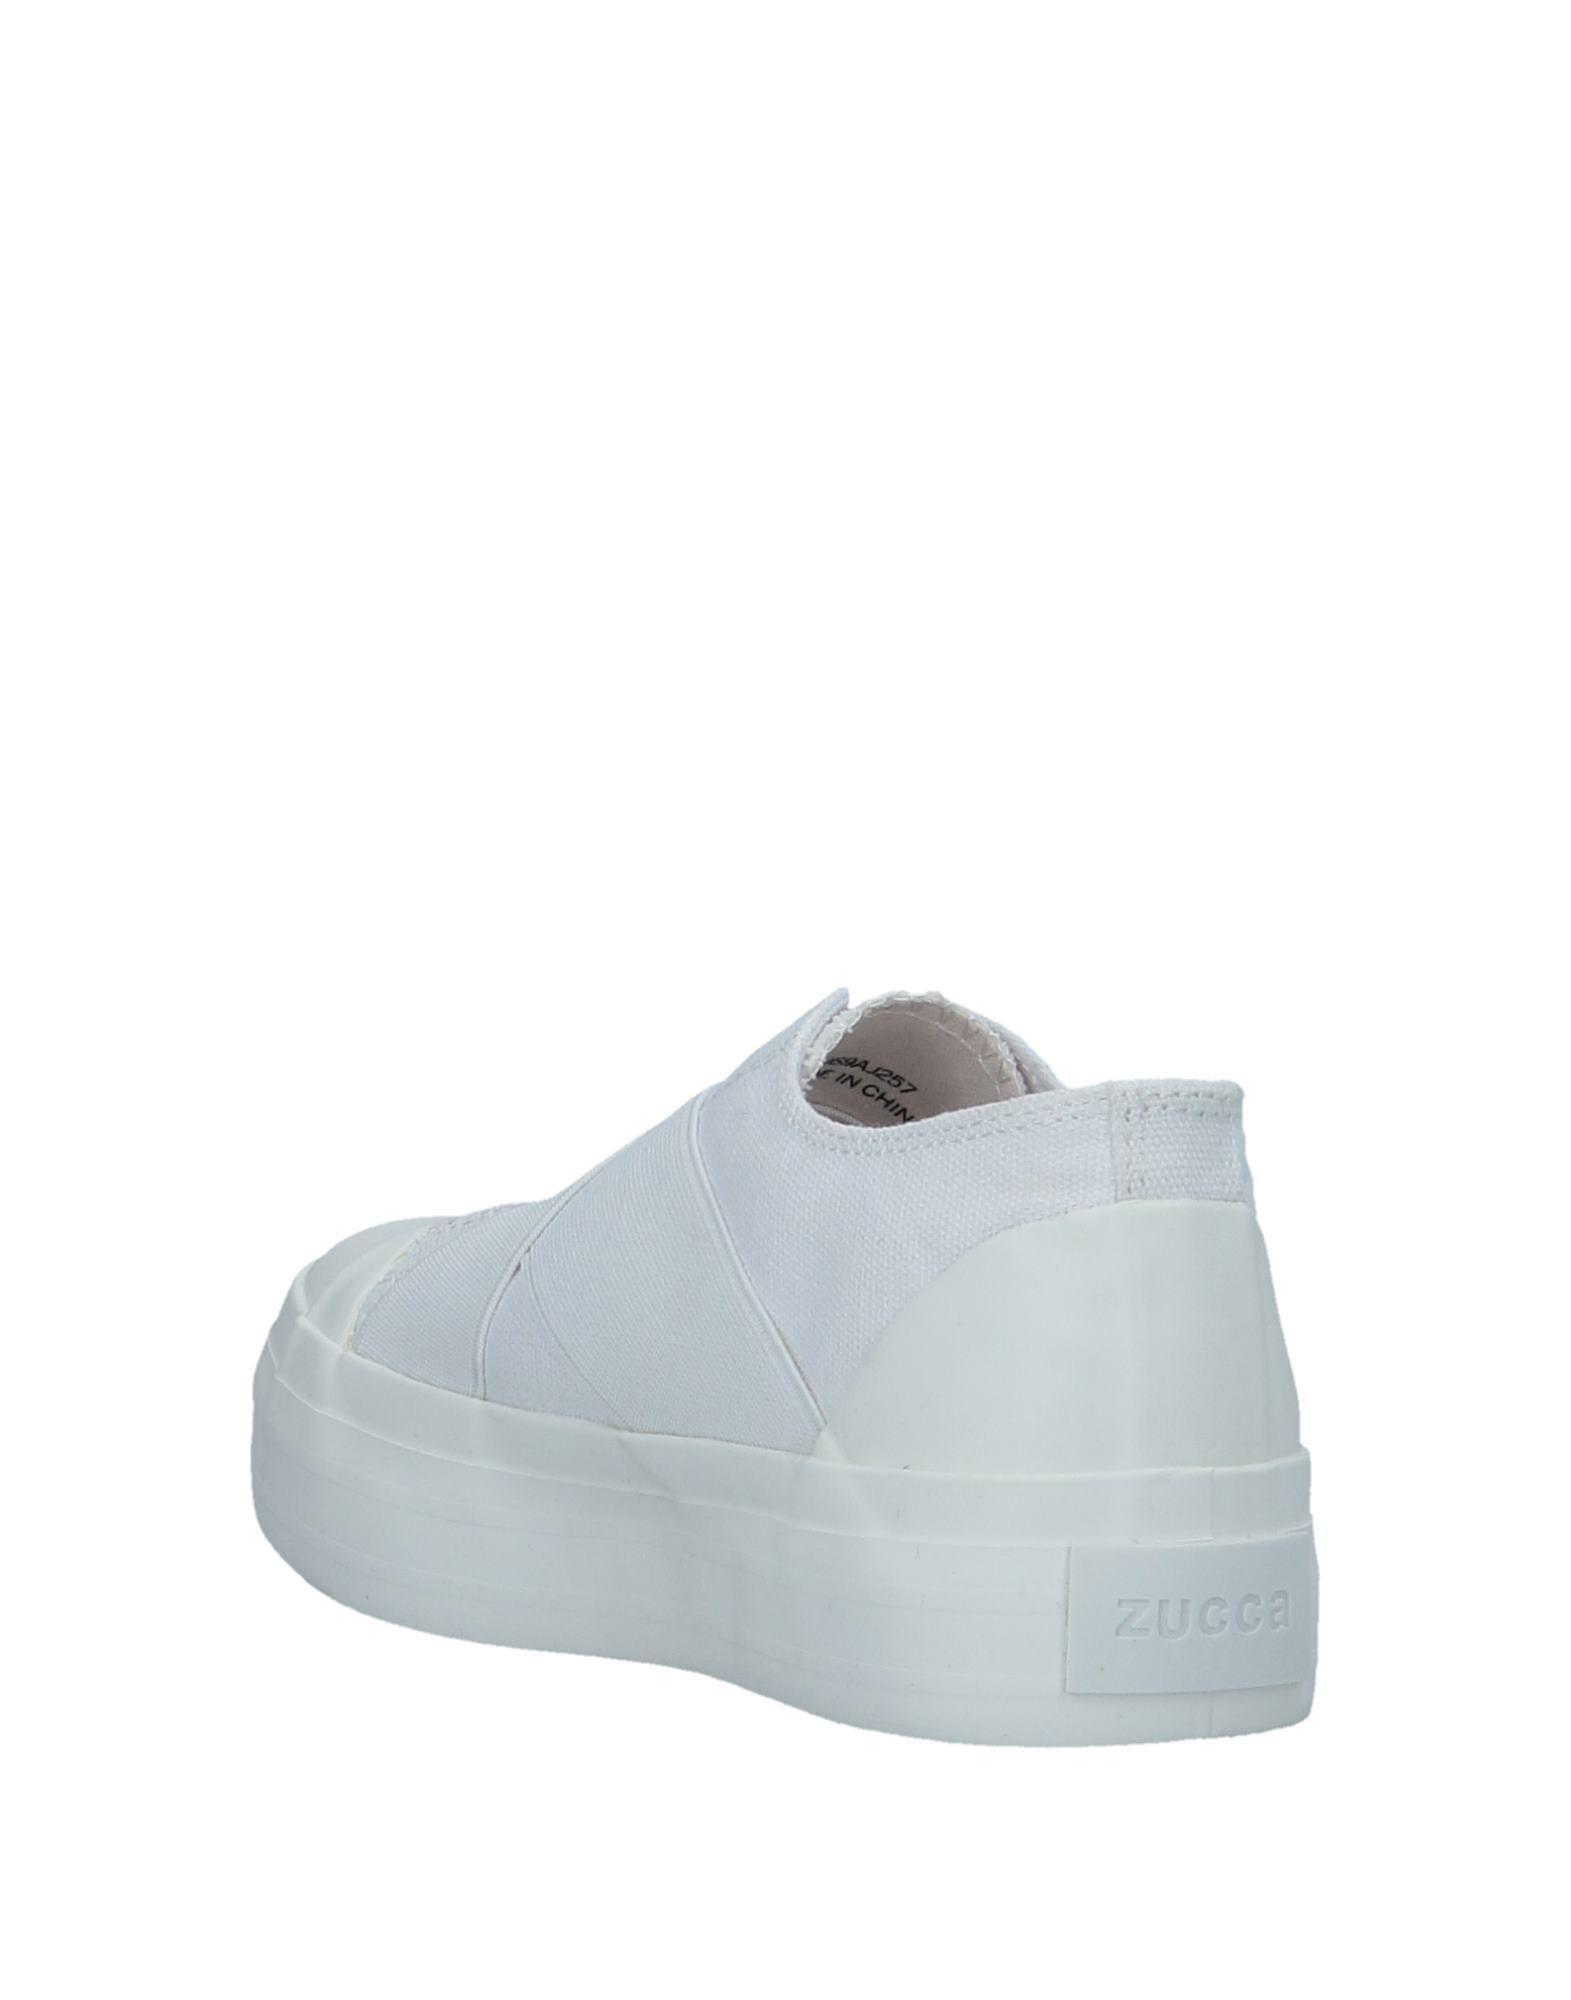 Zucca Low-tops & Sneakers in White